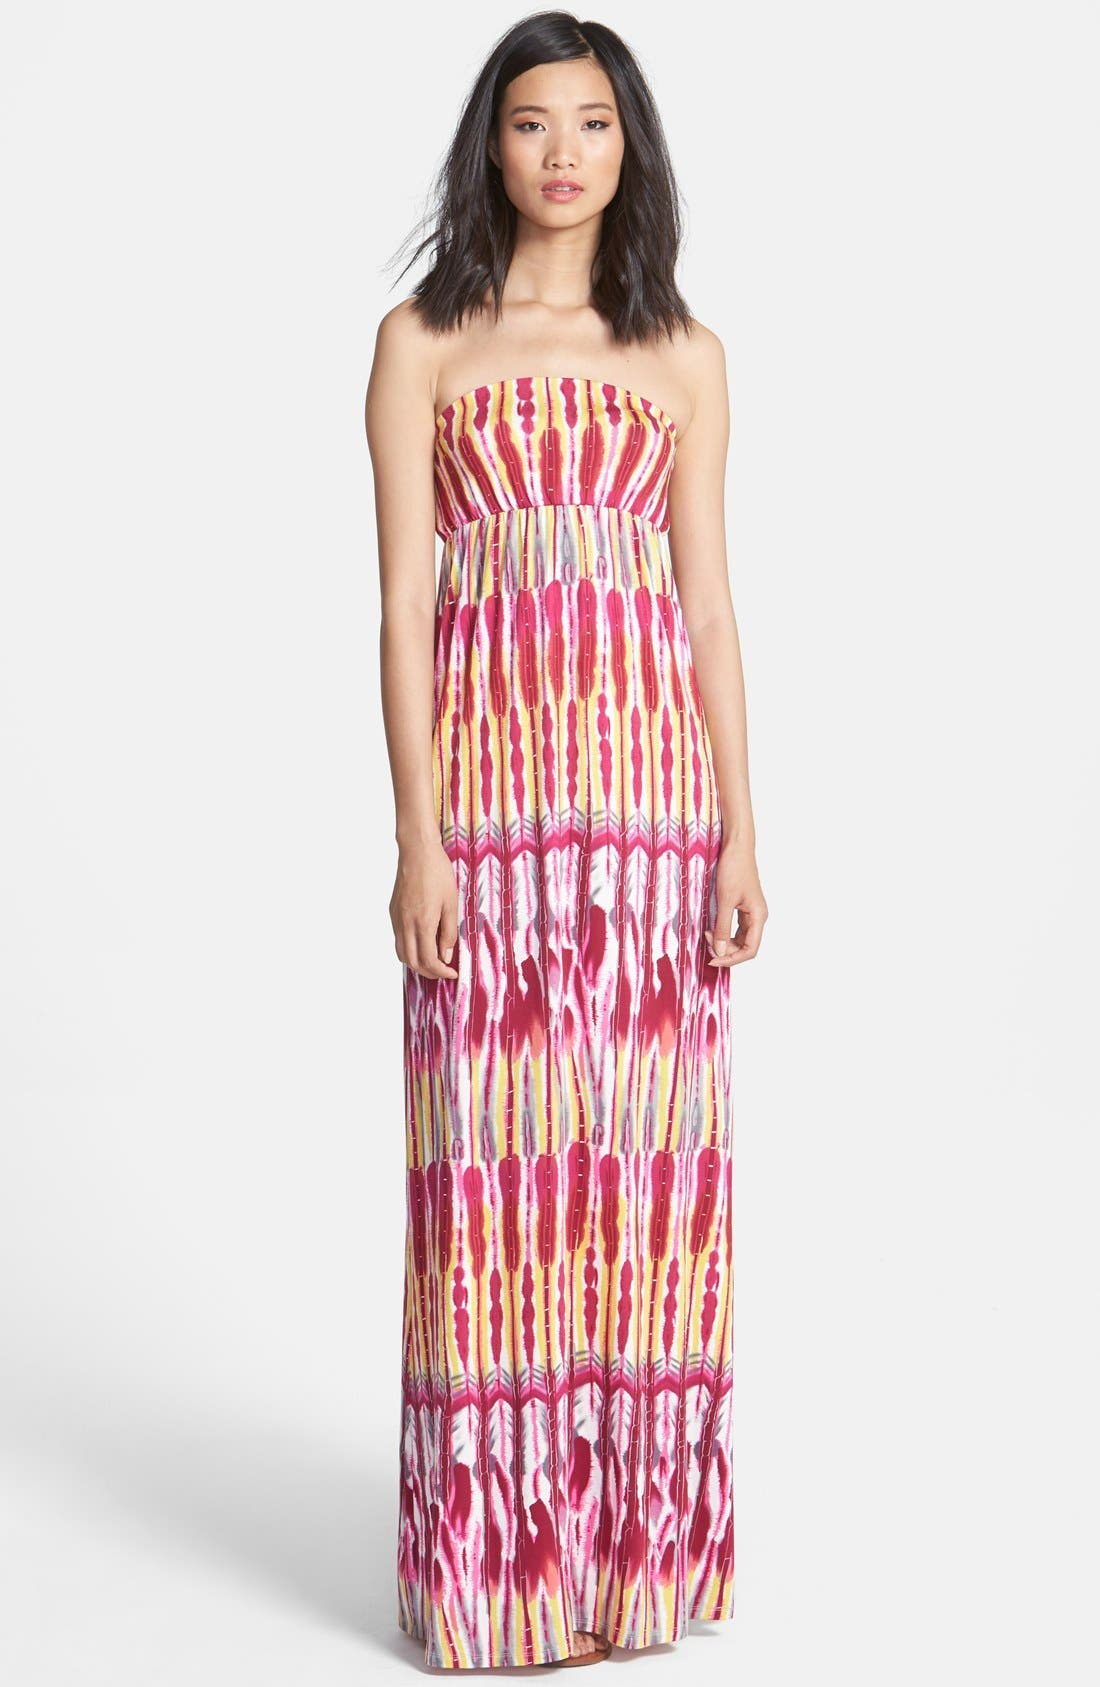 Alternate Image 1 Selected - Felicity & Coco Print Strapless Jersey Maxi Dress (Nordstrom Exclusive)